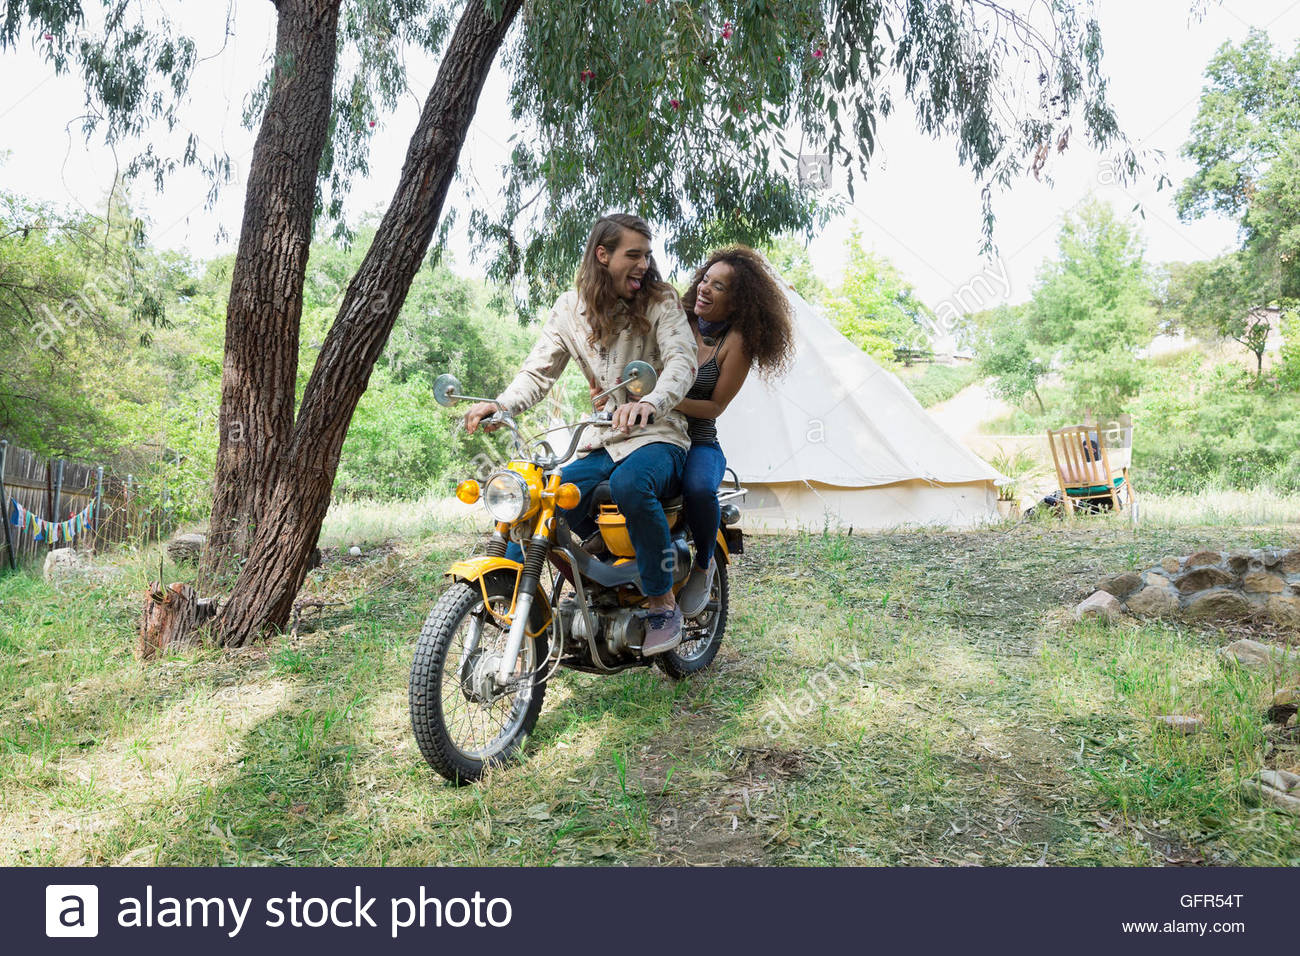 Young couple writing motorcycle outside c&ing yurt - Stock Image & Motorcycle Tent Stock Photos u0026 Motorcycle Tent Stock Images - Alamy